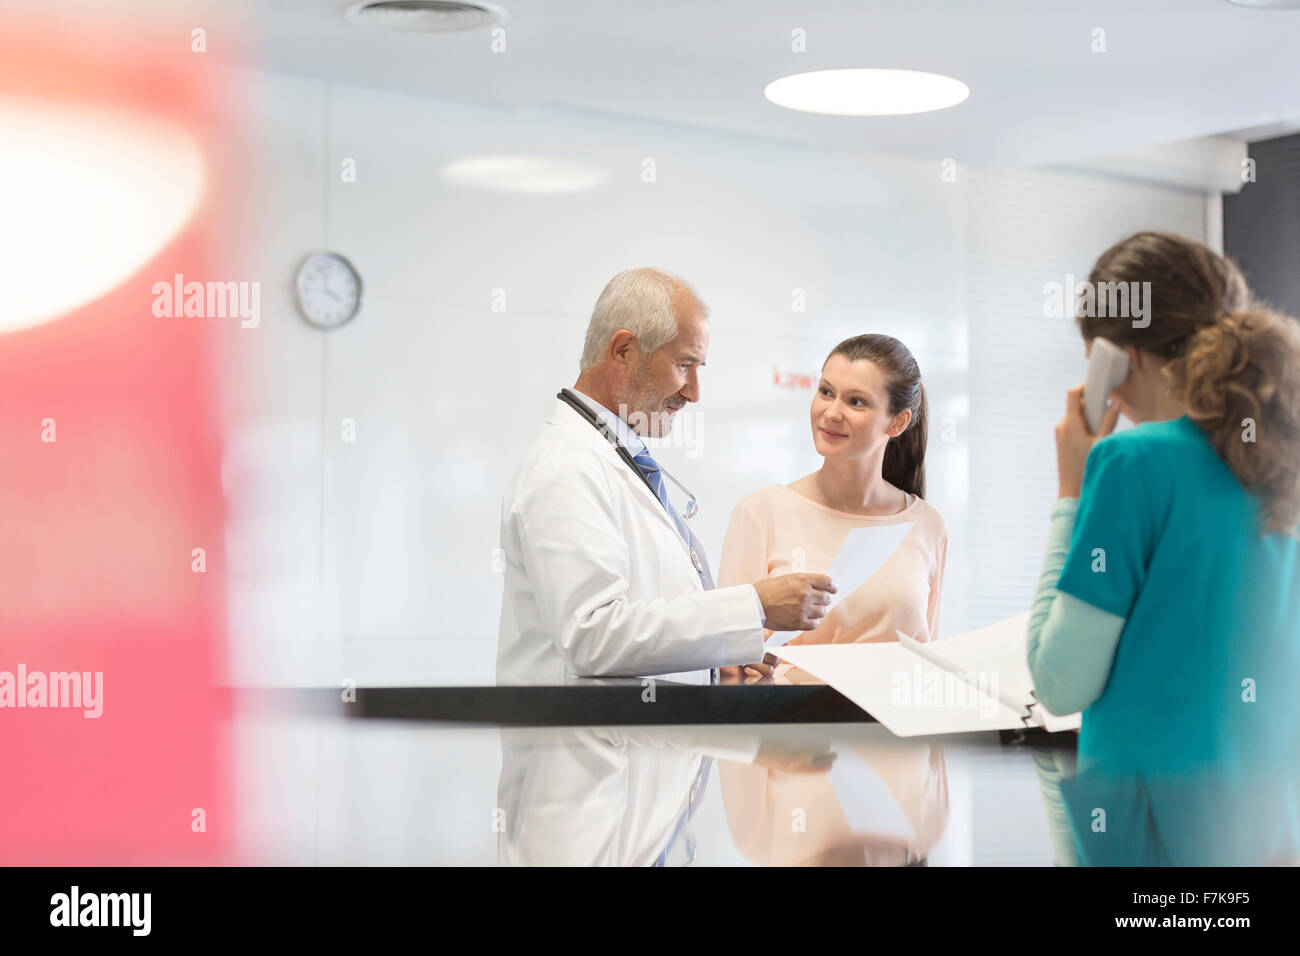 Doctor and patient discussing medical record at nurses station - Stock Image